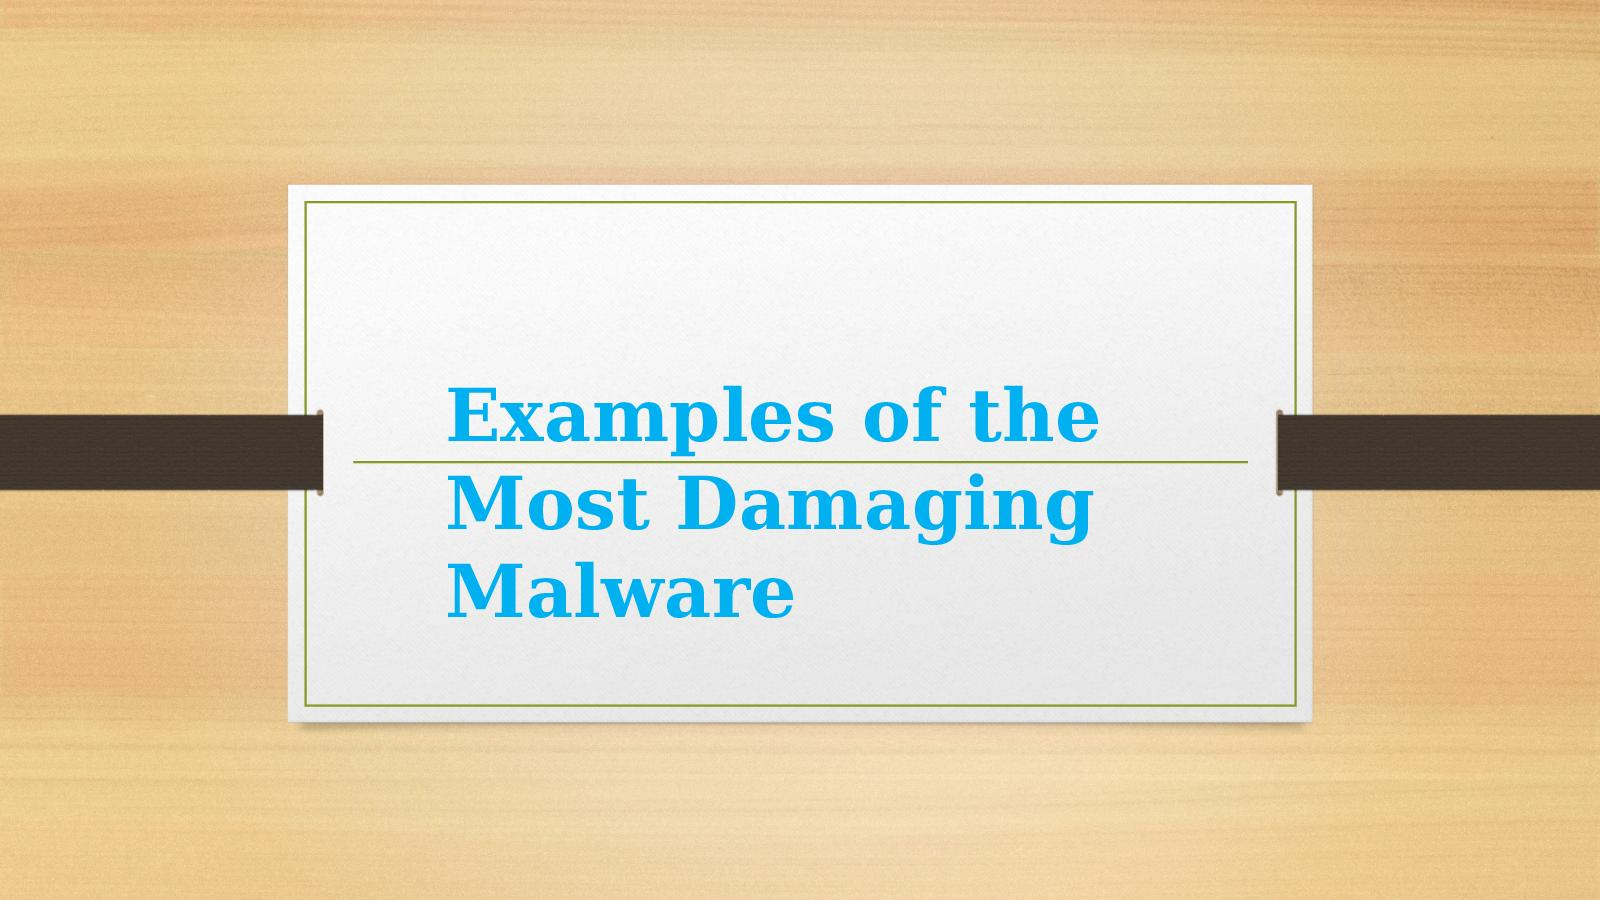 Calaméo - Examples Of The Most Damaging Malware